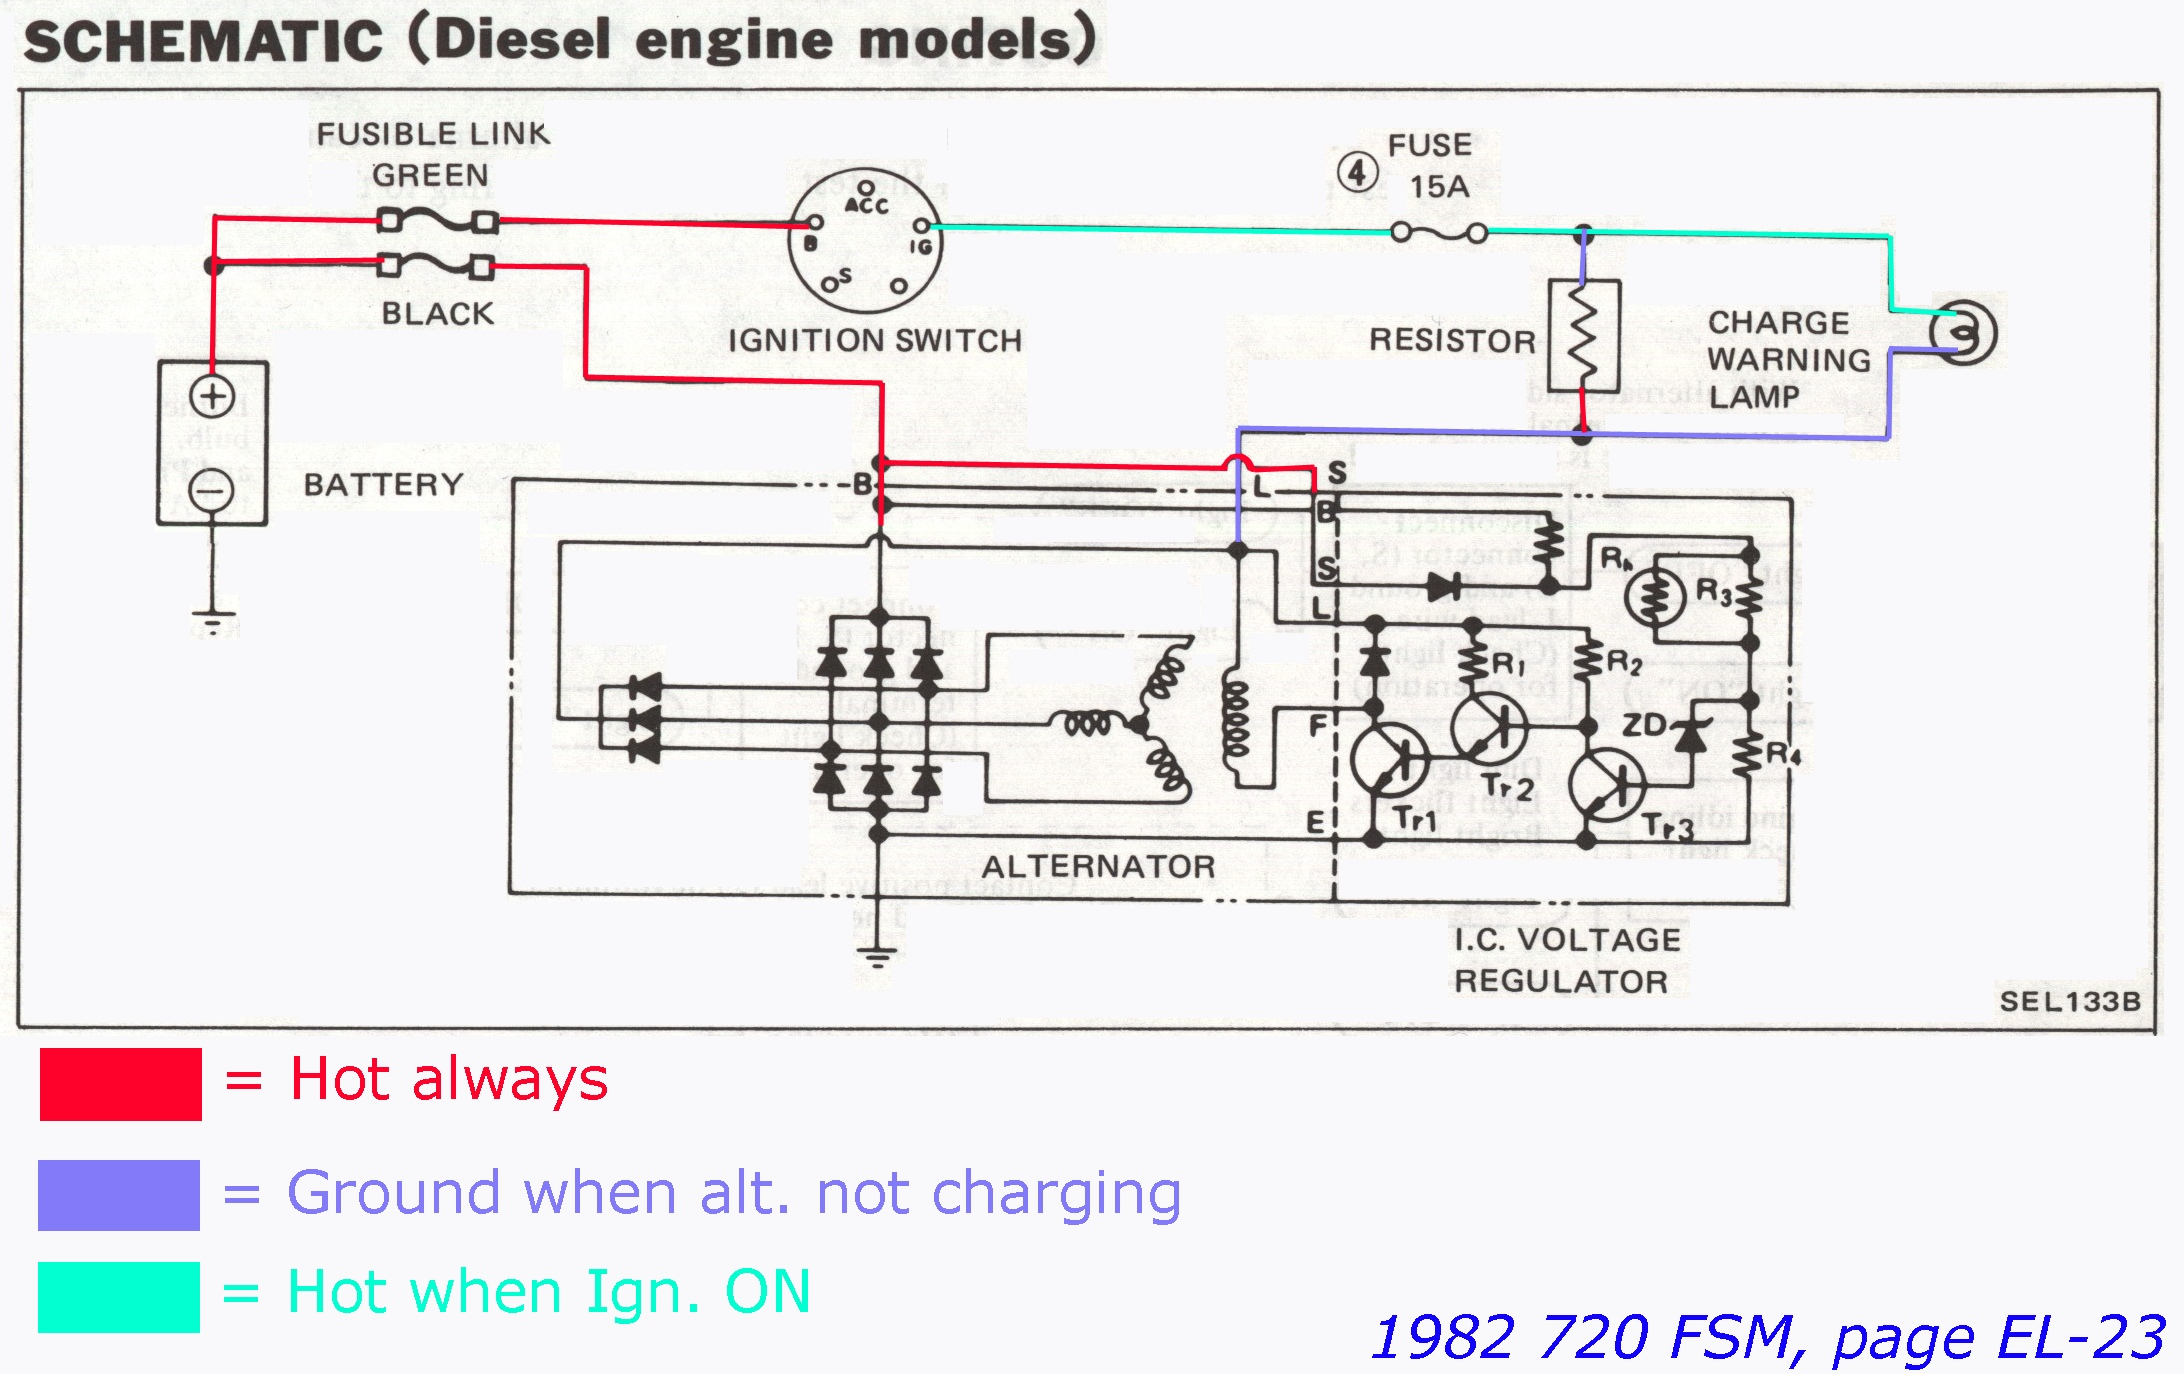 toyota forklift wiring diagram pdf on toyota images free download Industrial Wiring Diagram toyota forklift wiring diagram pdf 13 2002 f150 wiring diagram pdf industrial wiring diagrams industrial wiring diagrams